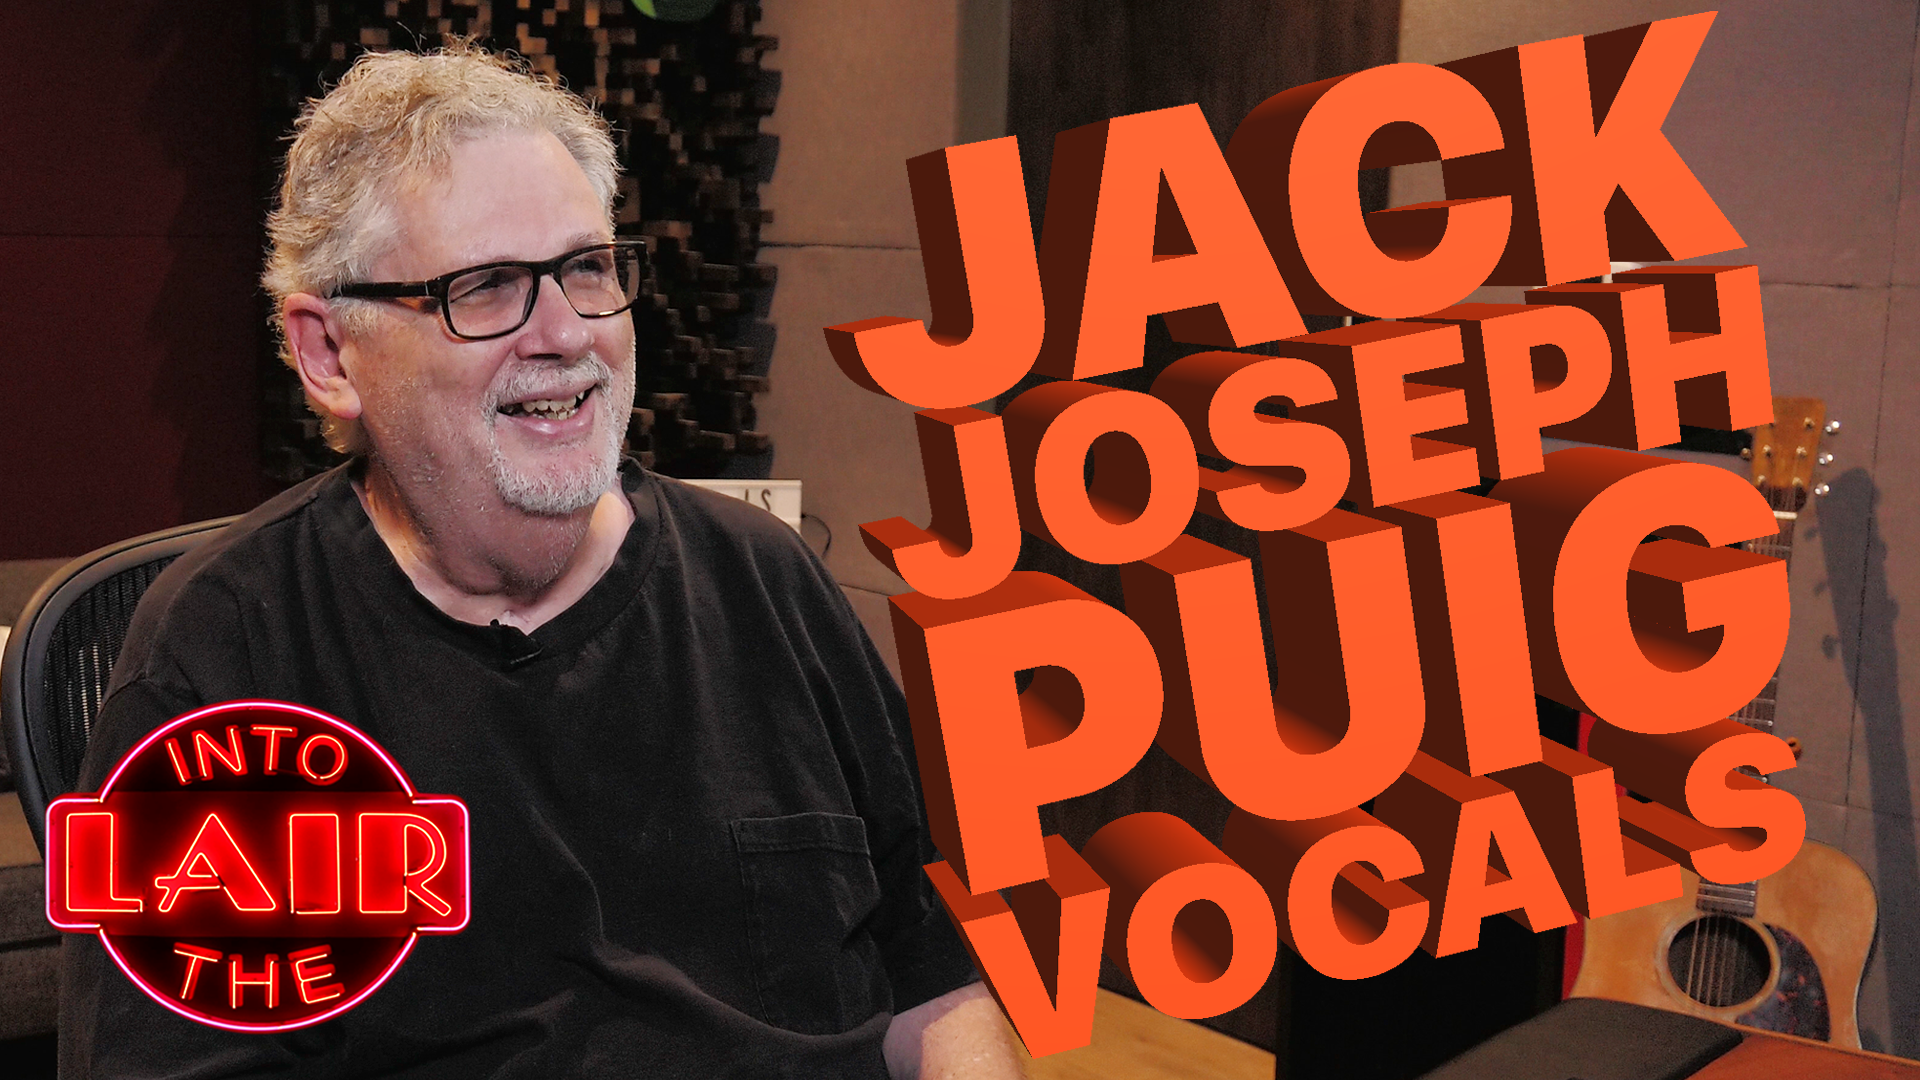 Jack Joseph Puig Vocals Plugin